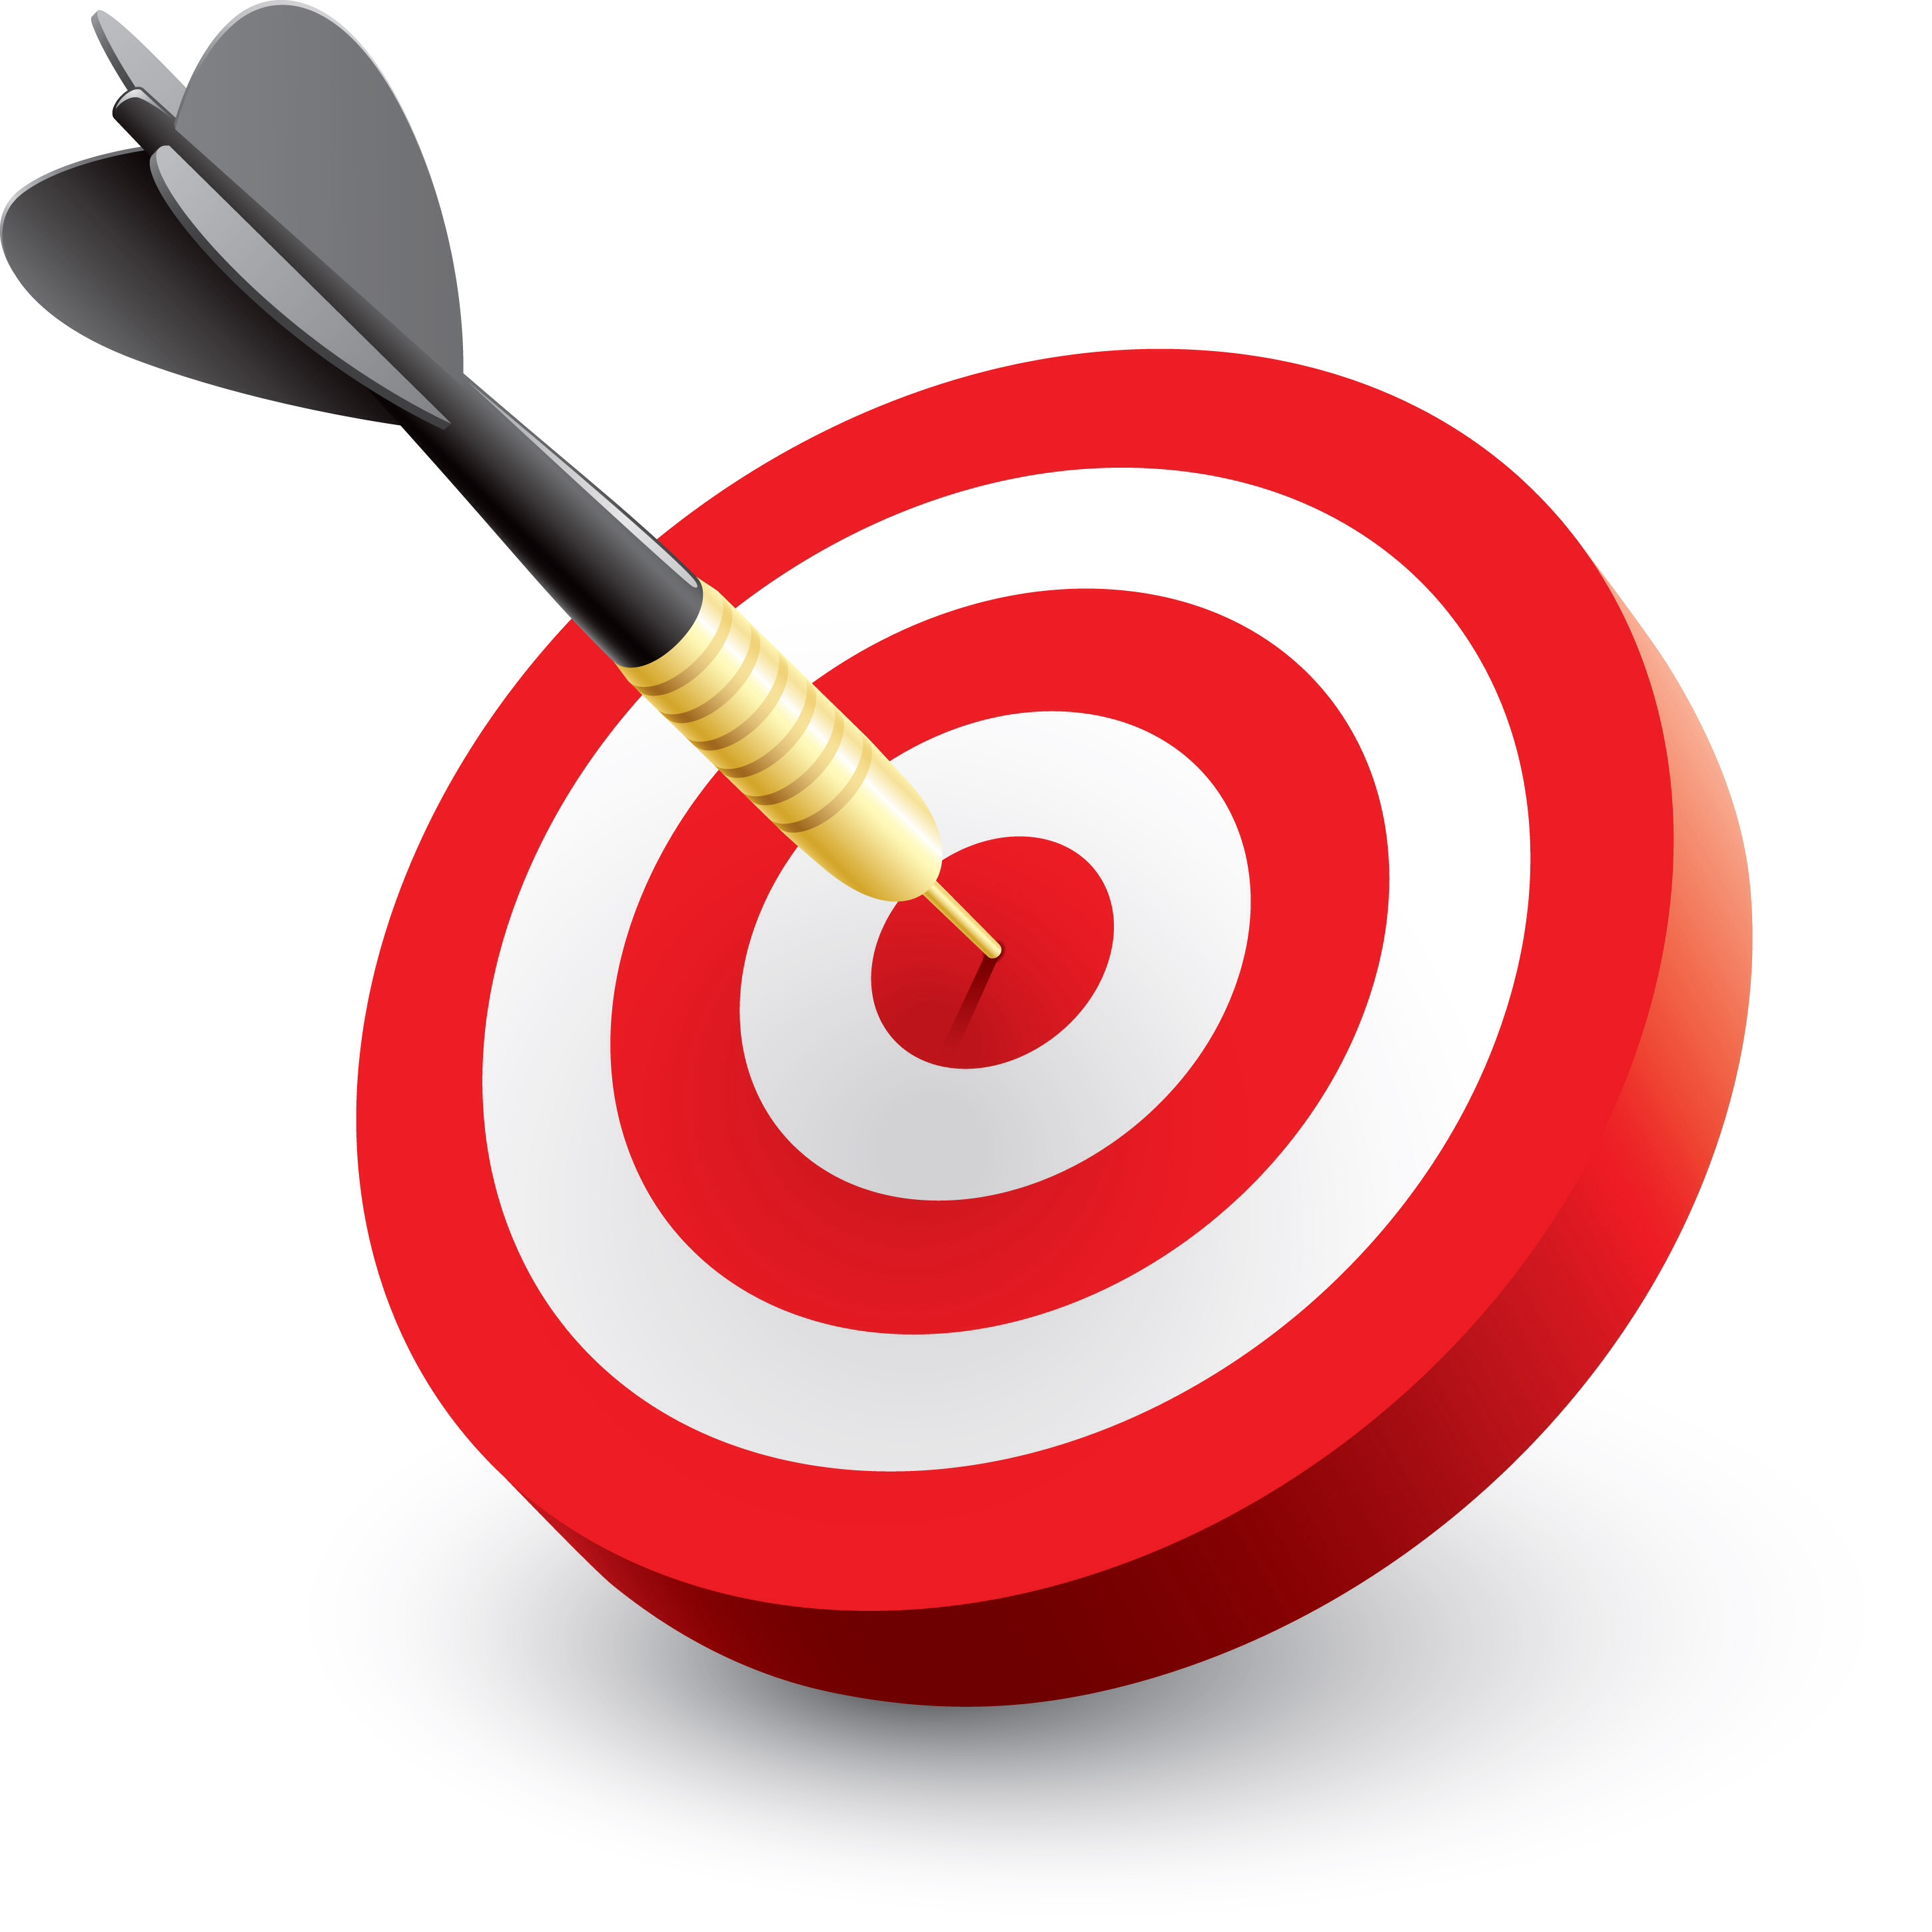 Bullseye clipart. Free cliparts download clip